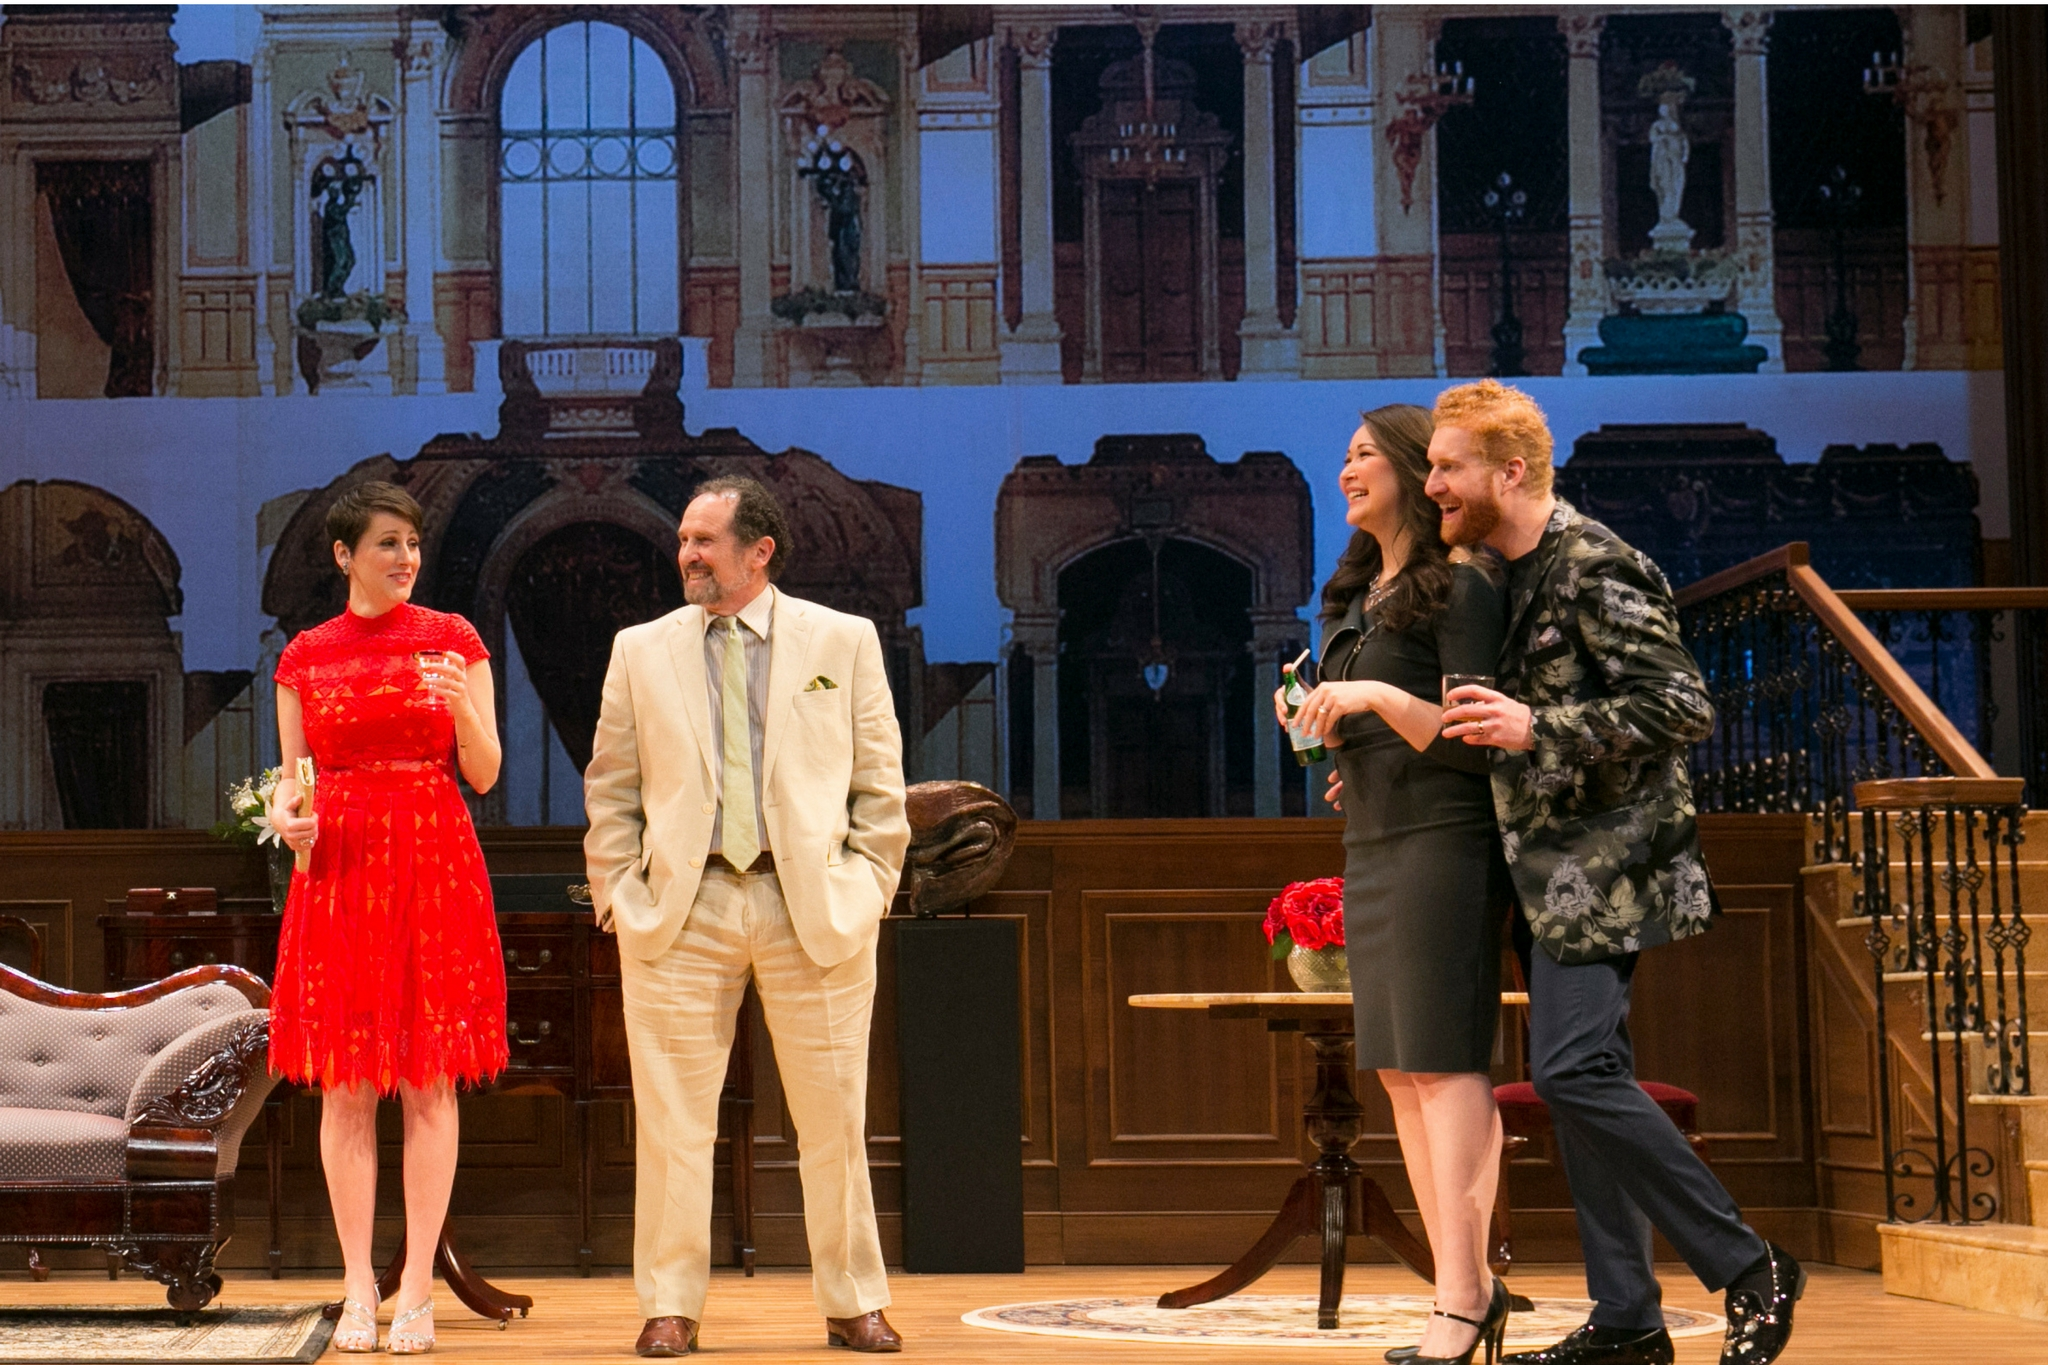 Amanda Collins (Flinty McGee), Jeremiah Kissel (Jeffrey Bernstein), Jordan Clark (Penny Nercessian), and Ed Hoopman (Sid Nercessian) in Old Money, 2017-Photo by Evgenia Eliseeva